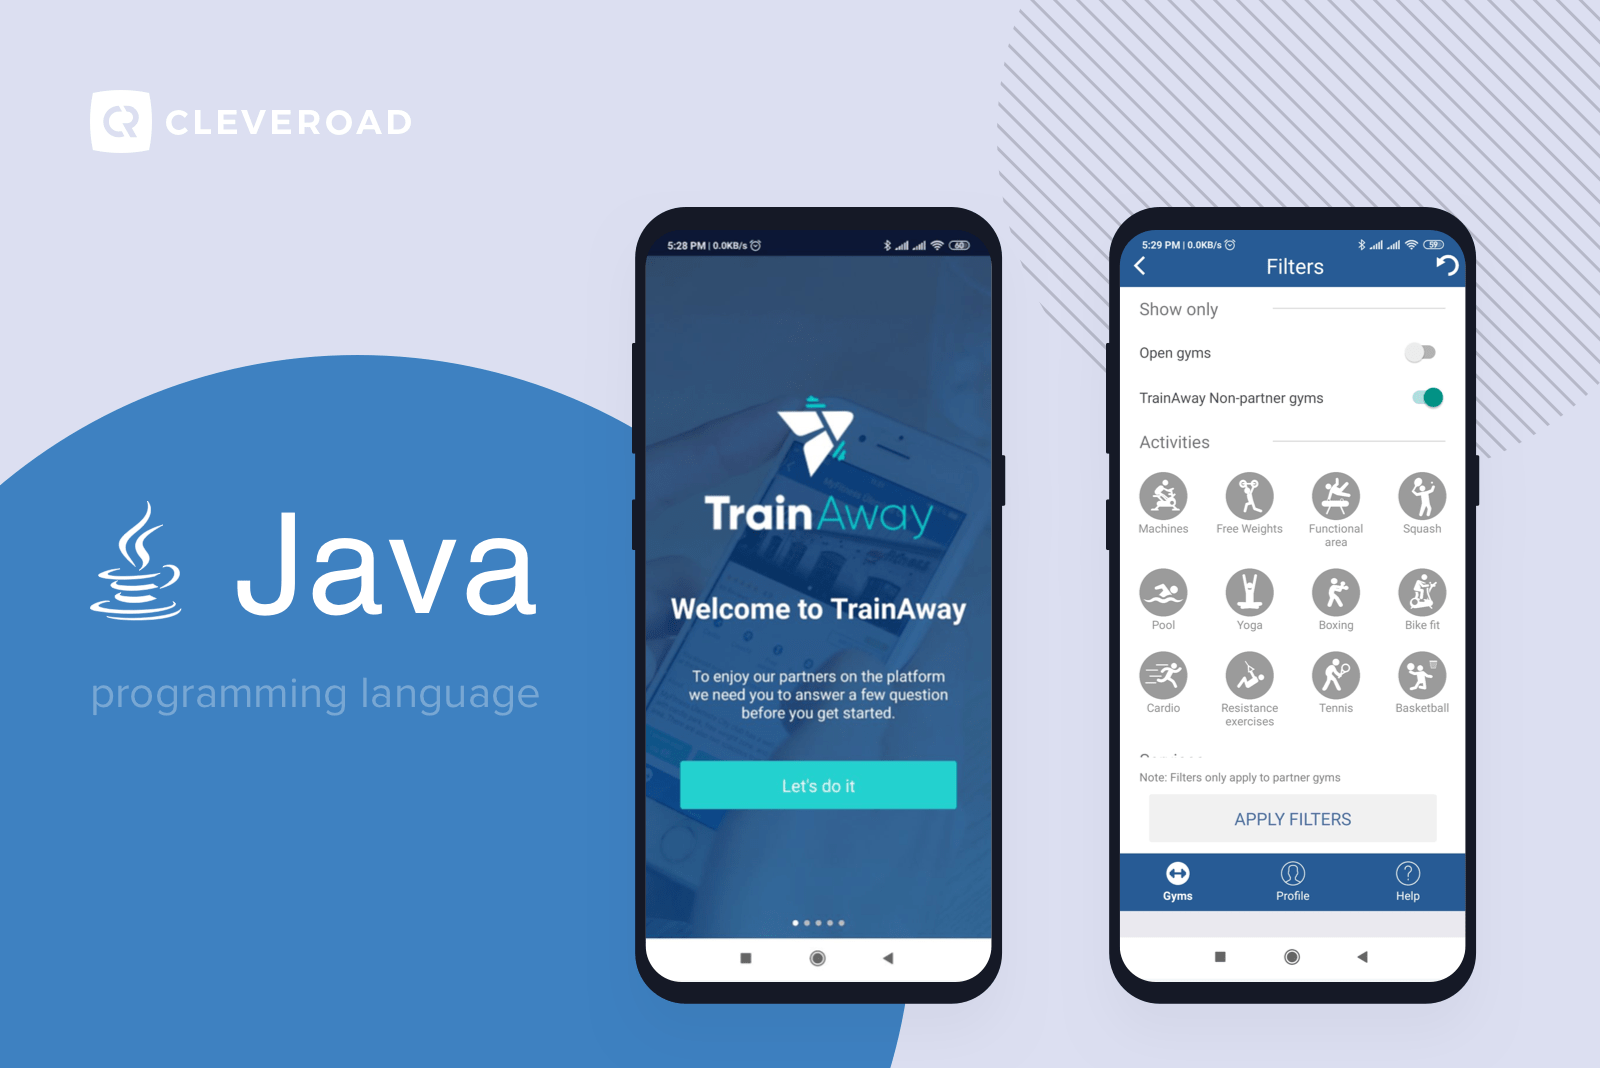 TrainAway app written in Java